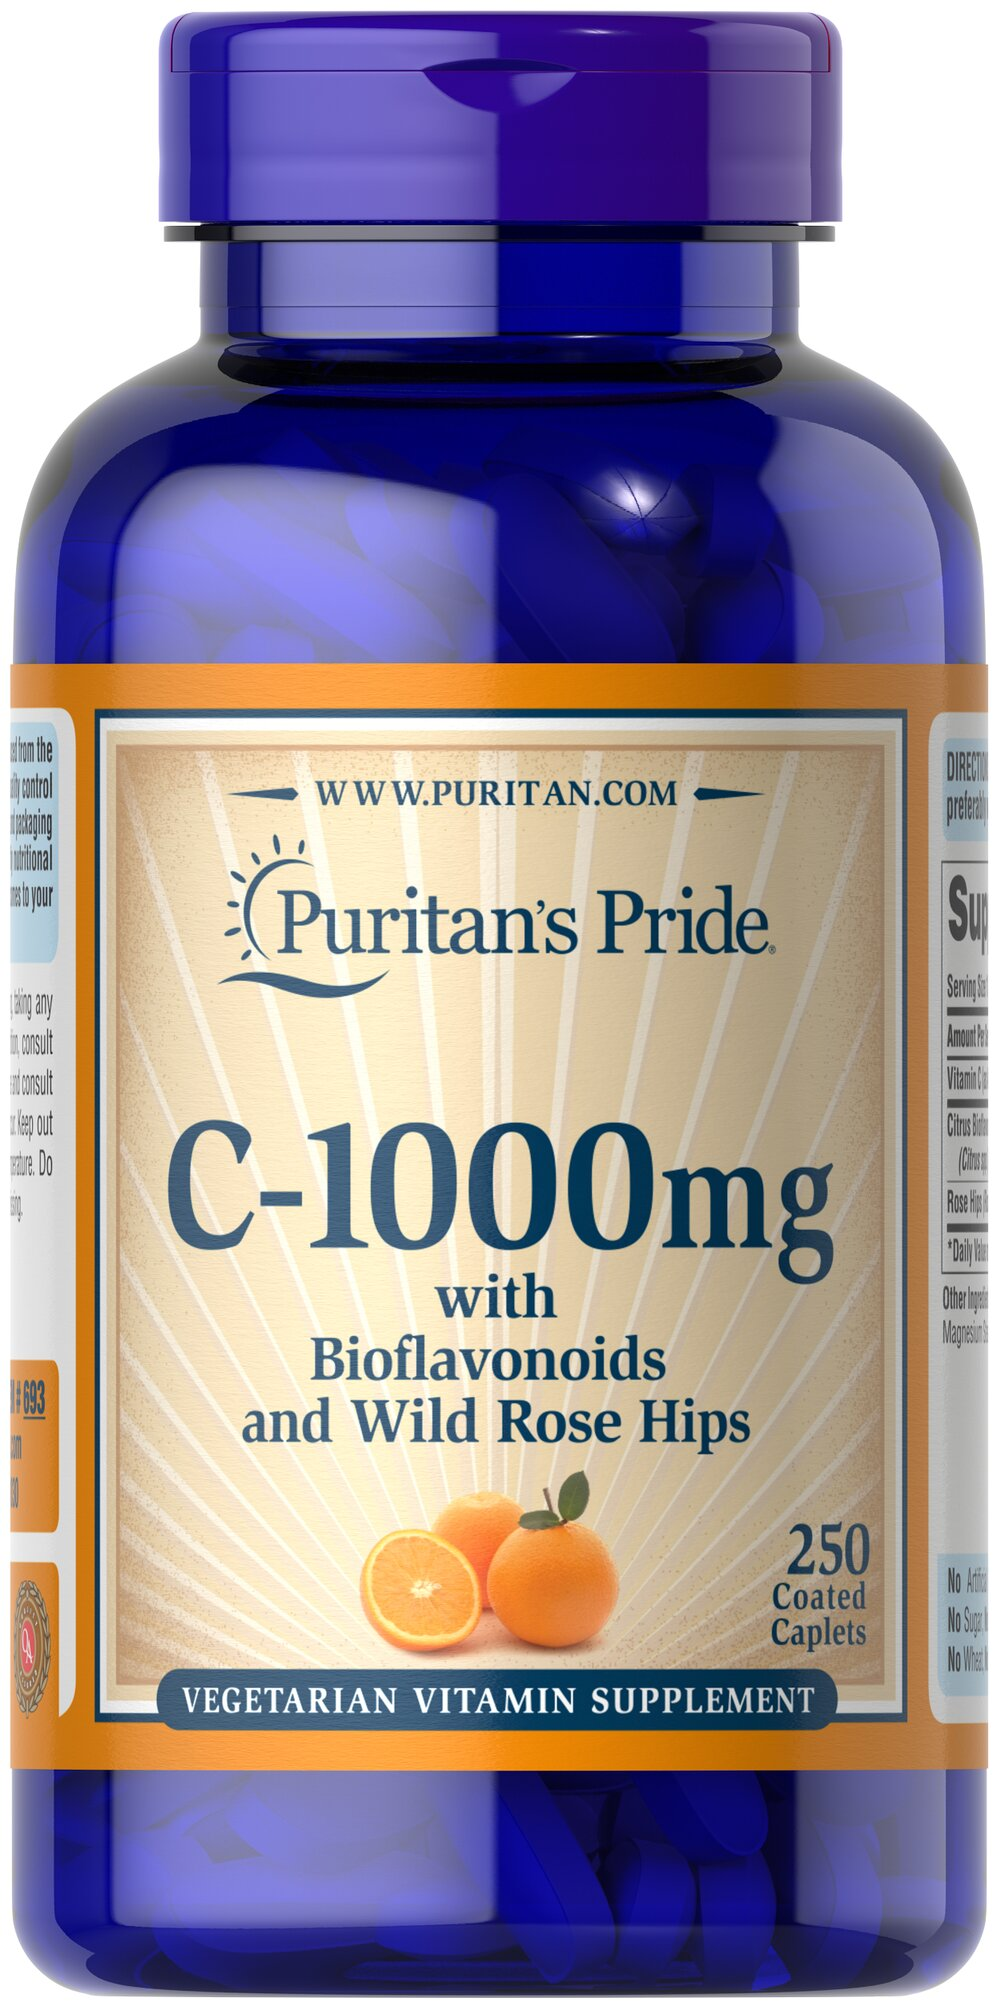 Vitamin C-1000 mg with Bioflavonoids & Rose Hips <p>Vitamin C  is essential to many functions in the body and is one of the leading vitamins for immune support and helps fight cell-damaging free radicals.**  Our product also includes Rose Hips, which help the body absorb and utilize Vitamin C.**</p><p>Offers superior antioxidant support.**</p><p>Supports healthy immune function and promotes well-being.**</p> 250 Caplets 1000 mg $19.99